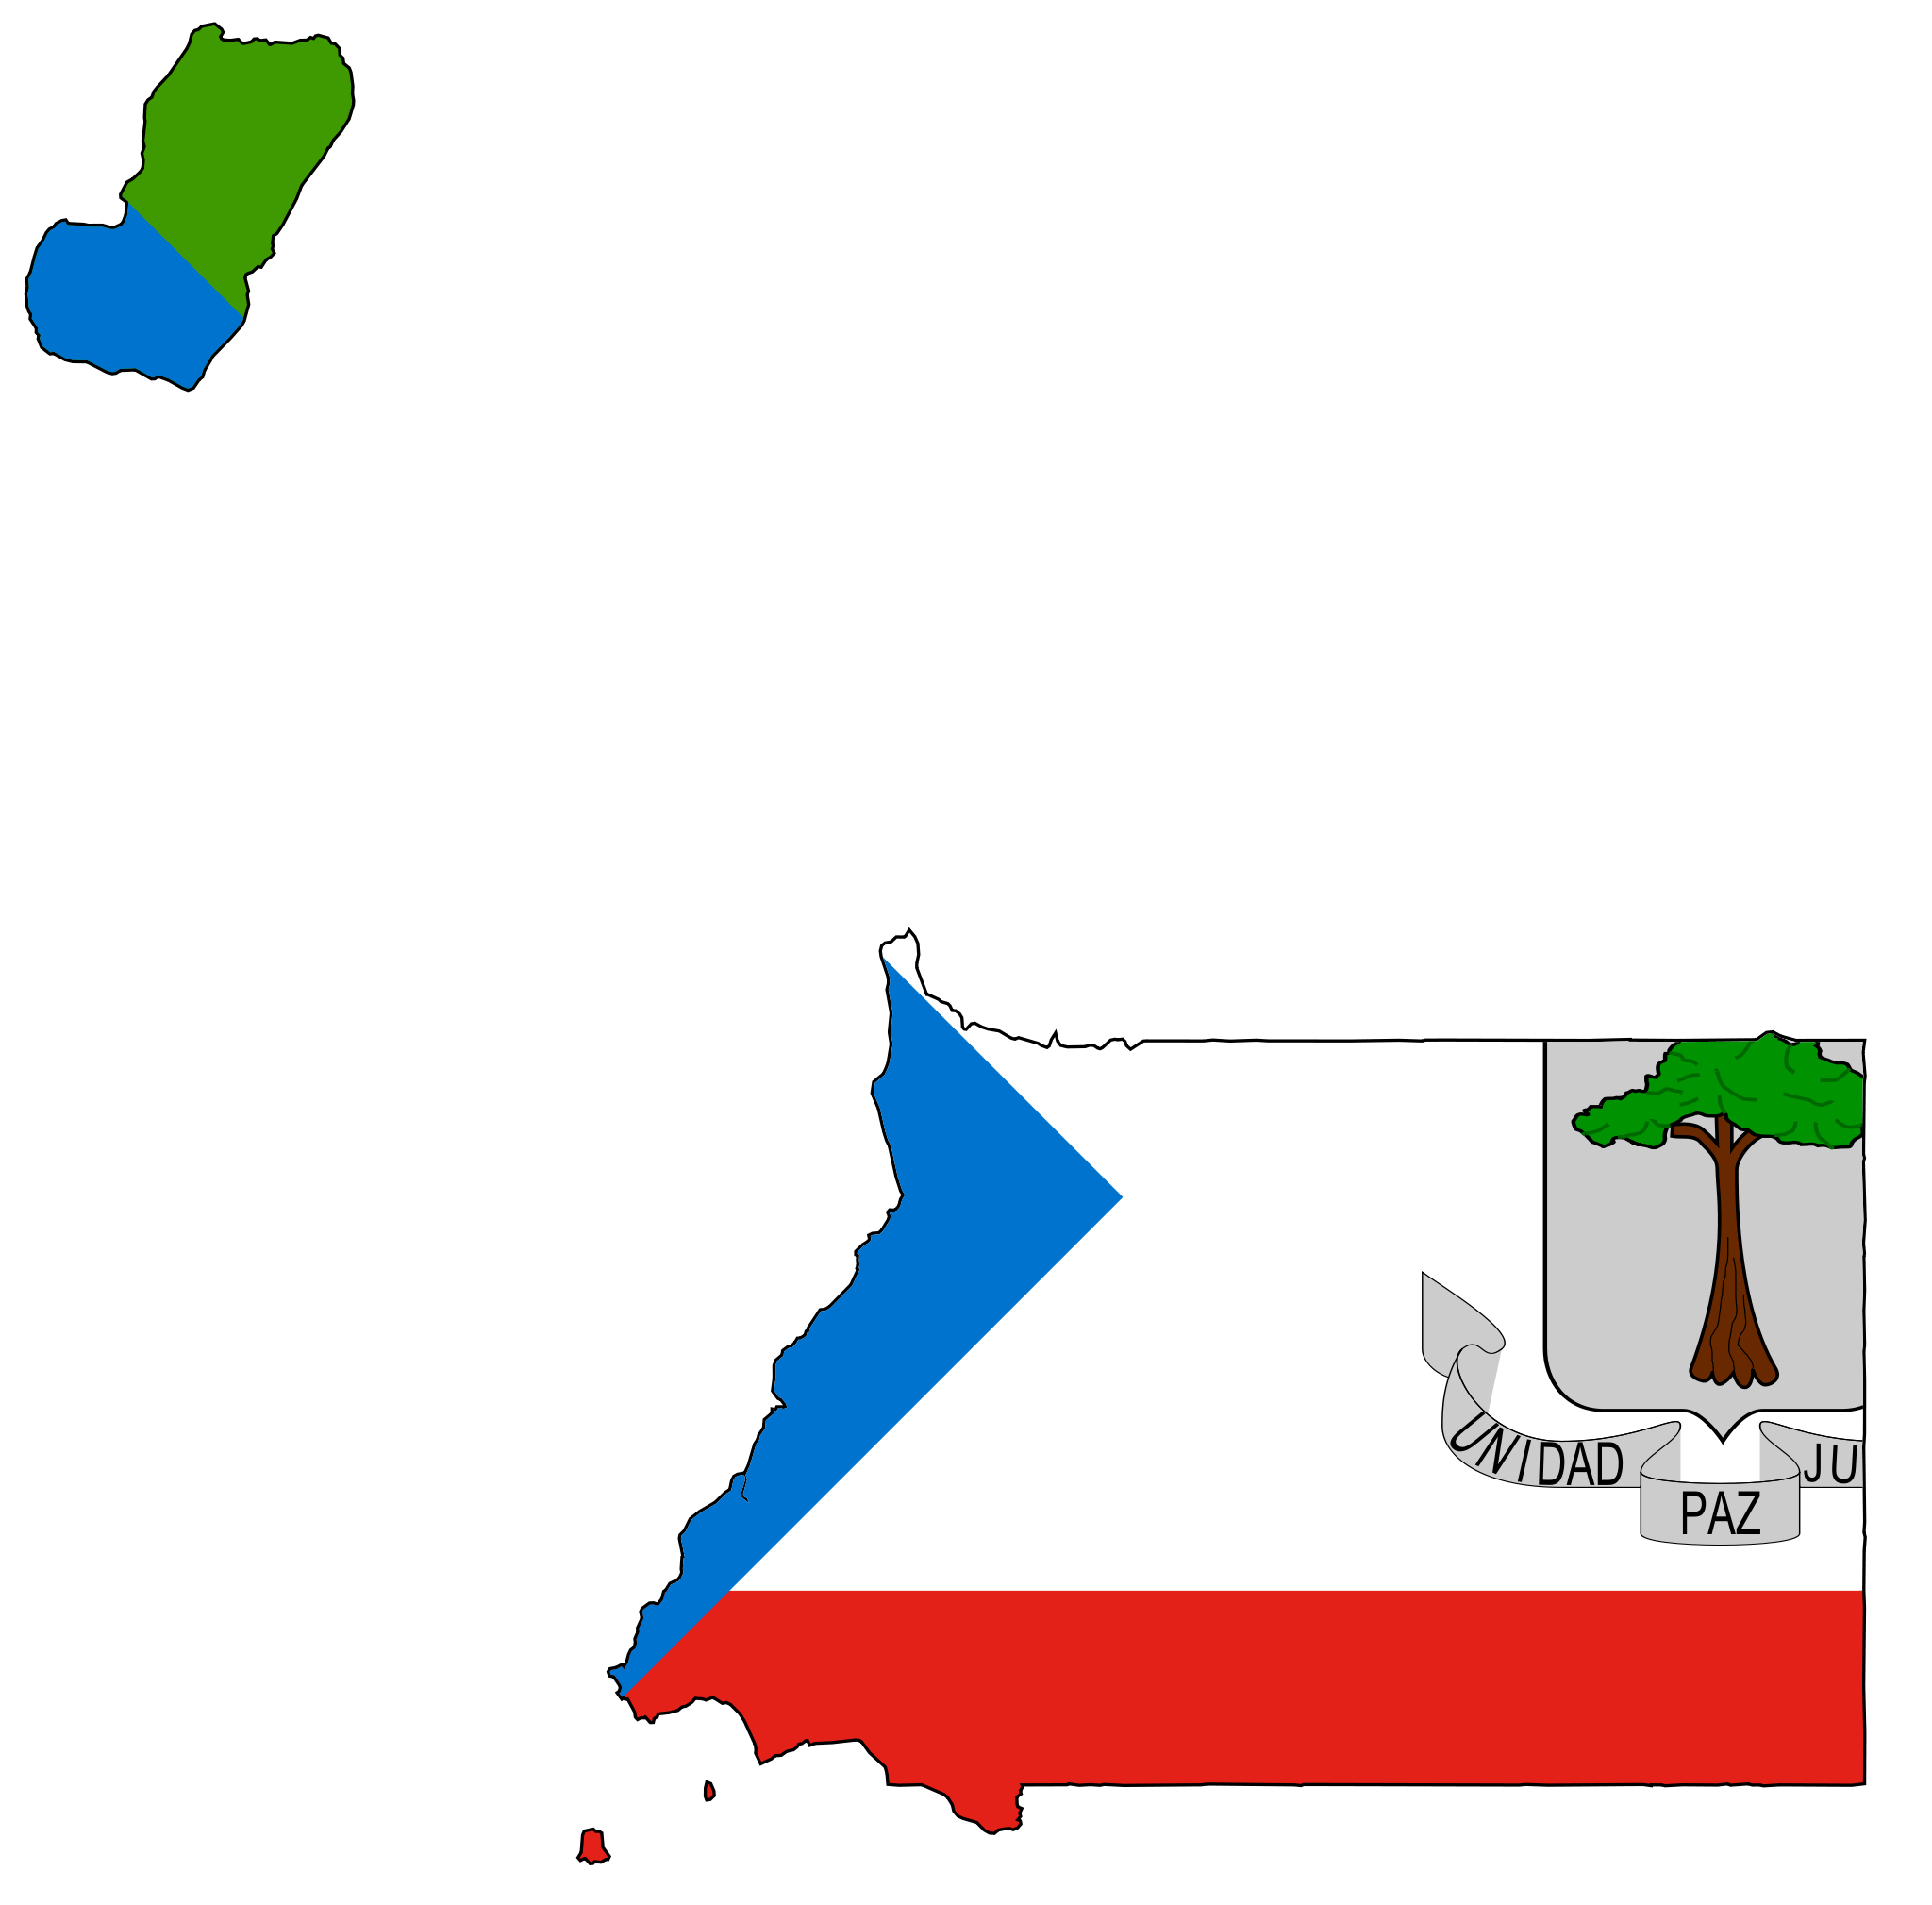 Equatorial Guinea Flag Map  적도기니 공화국